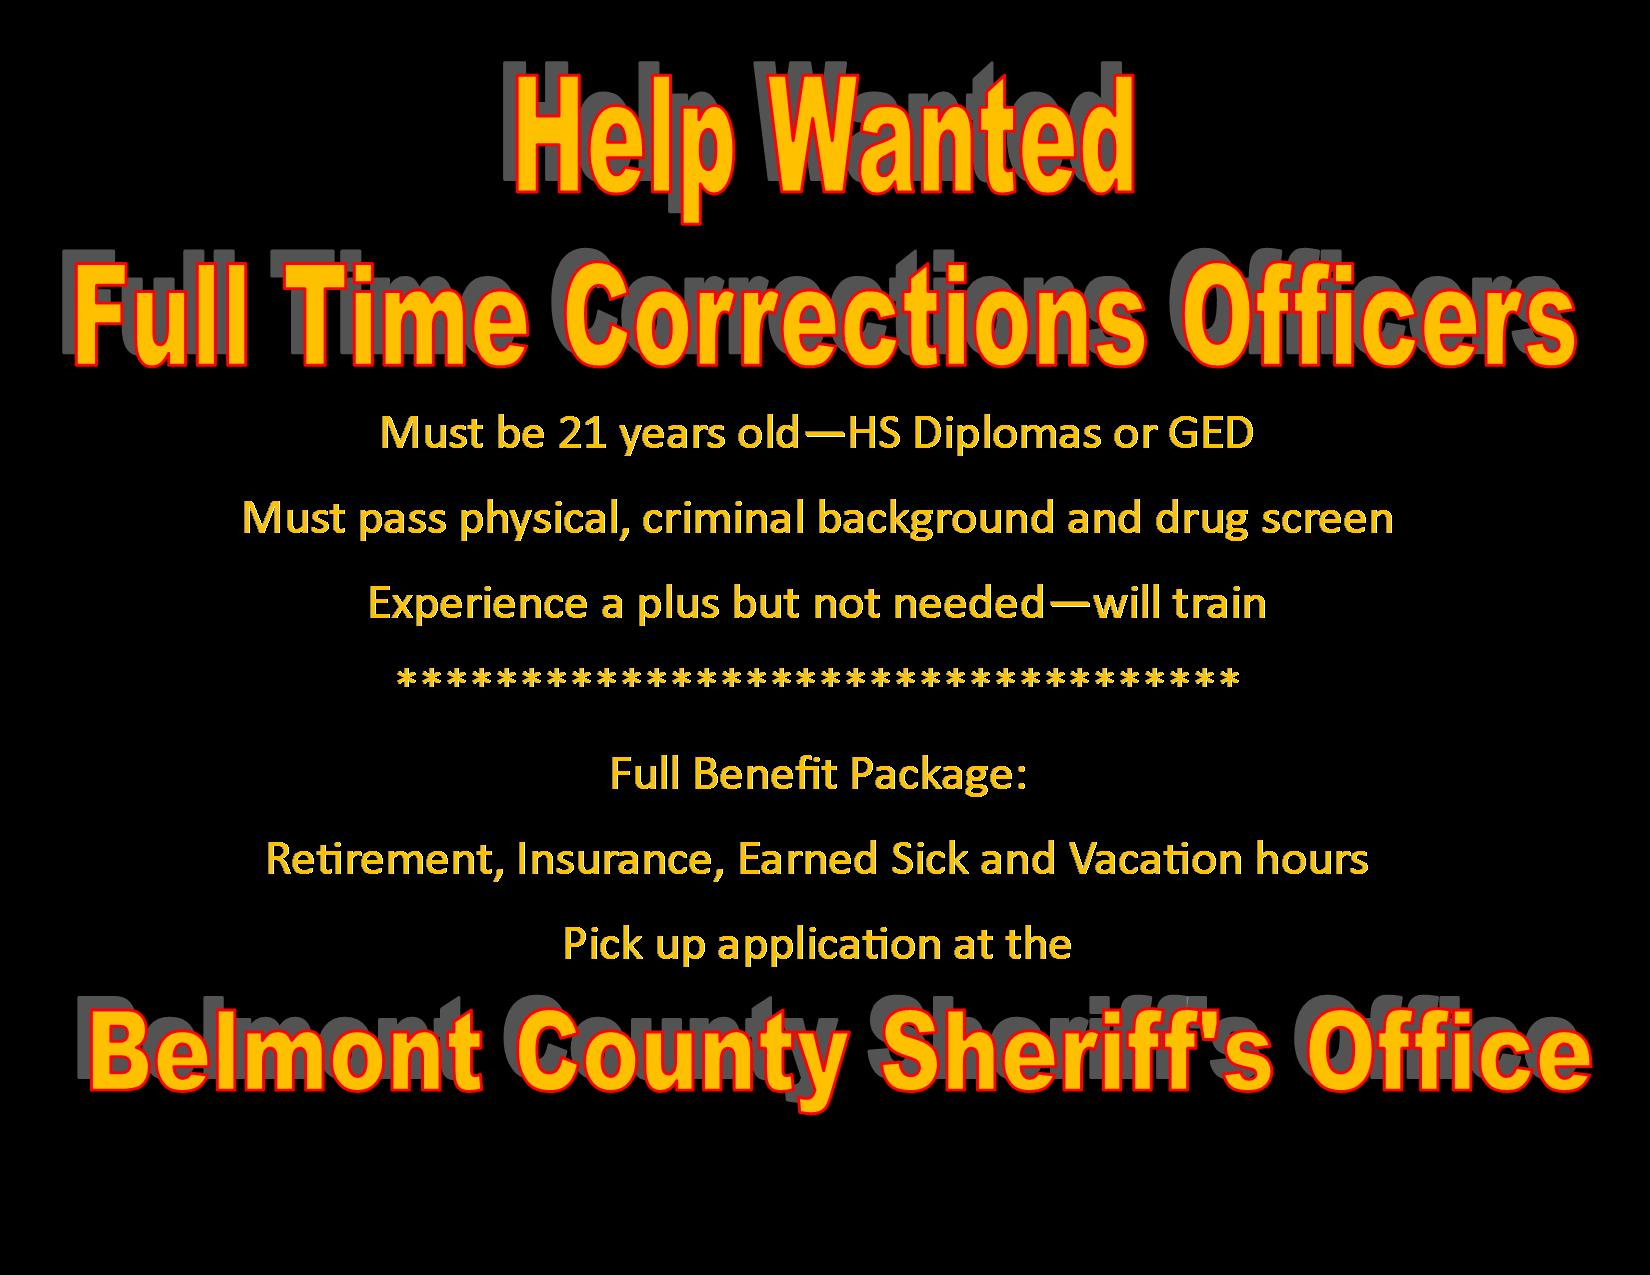 CorrectionsOfficers